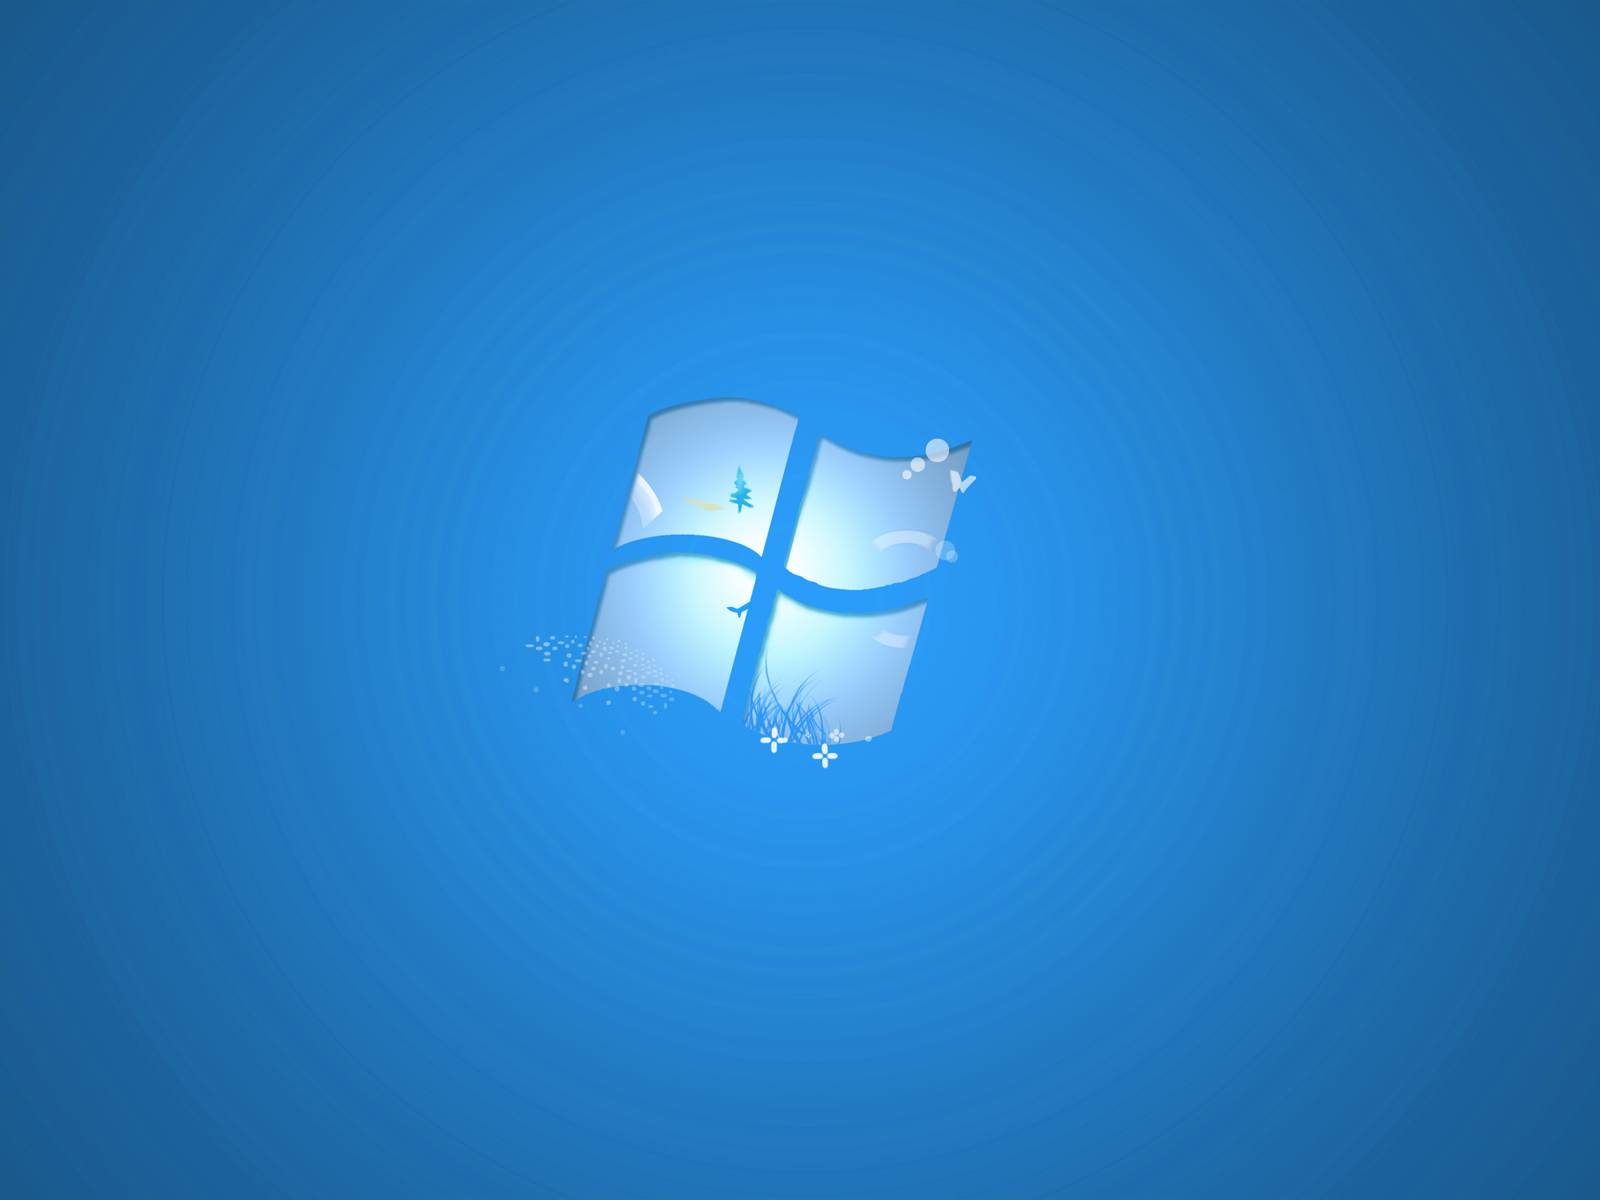 Windows 7 professional wallpapers hd 44 wallpapers for Window 7 professional